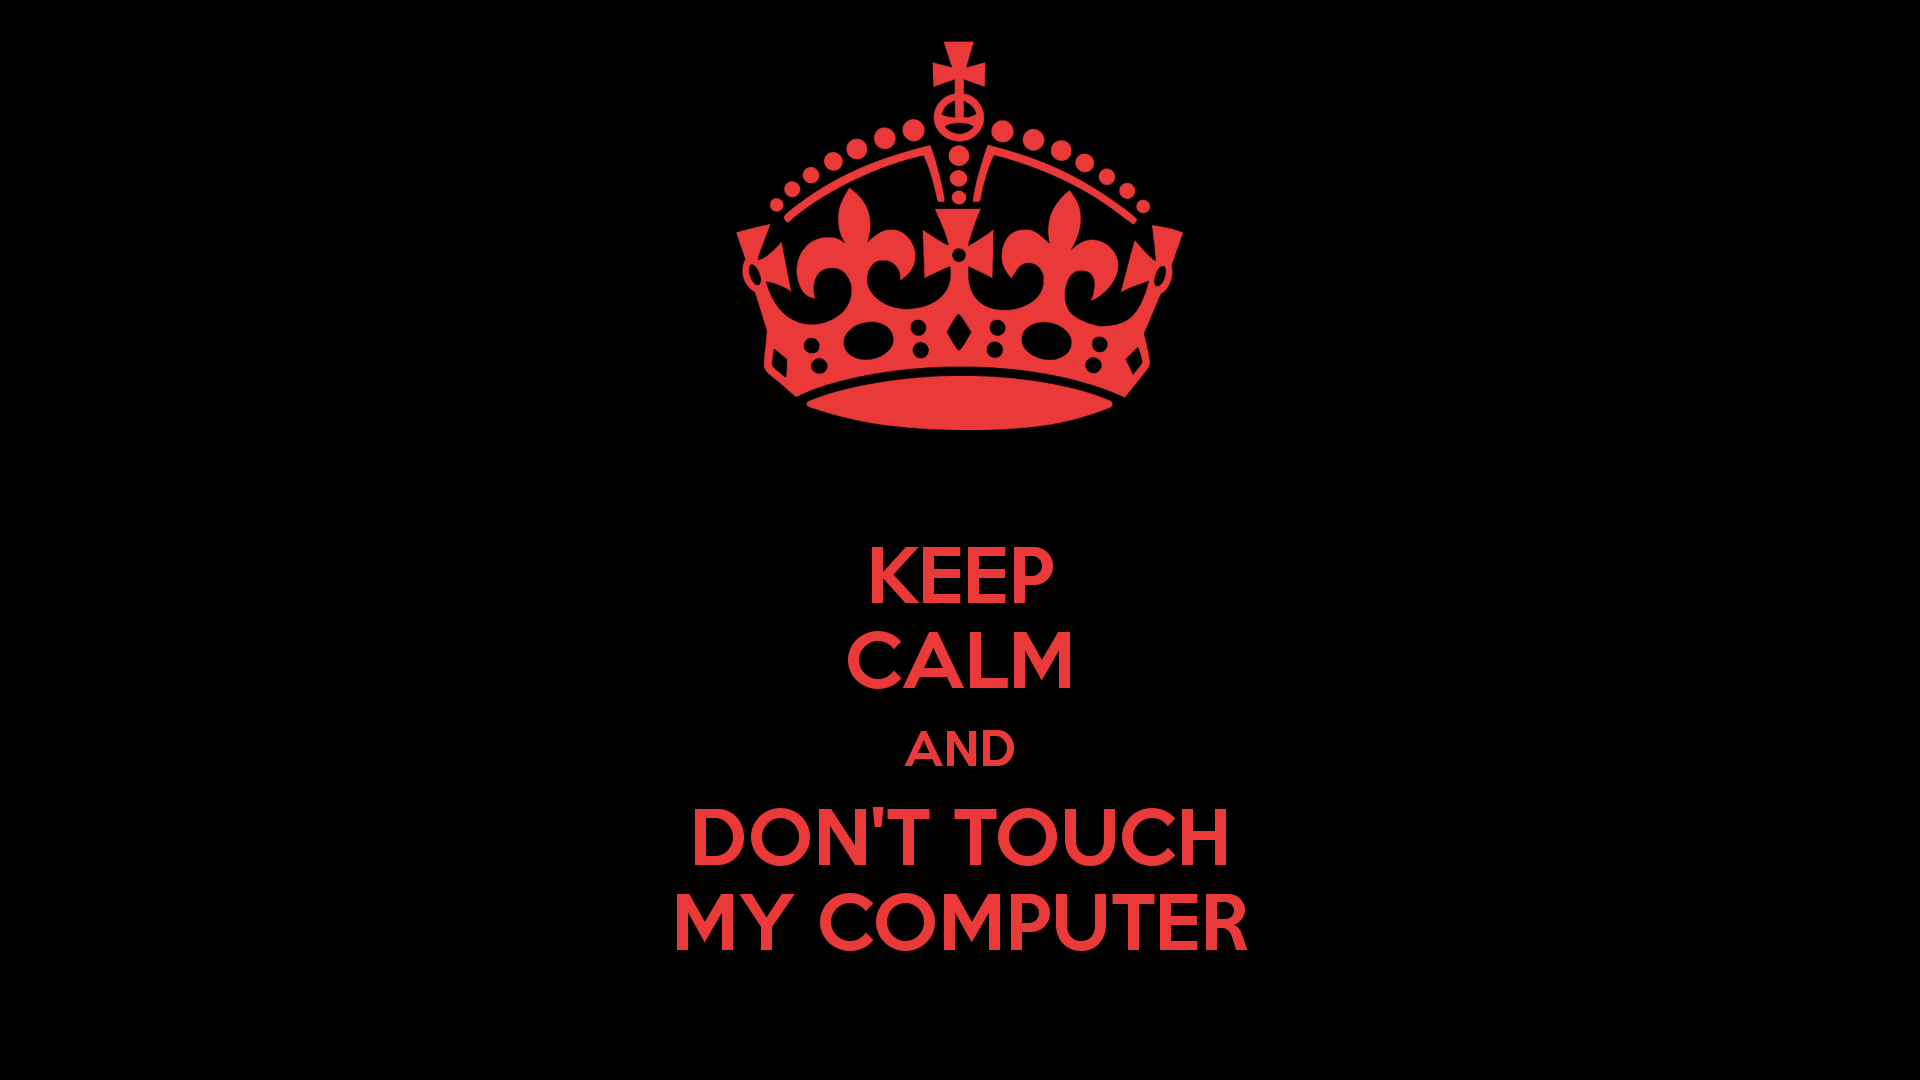 Dont Touch My Phone Wallpapers For Iphone - Keep Calm And Fuck , HD Wallpaper & Backgrounds